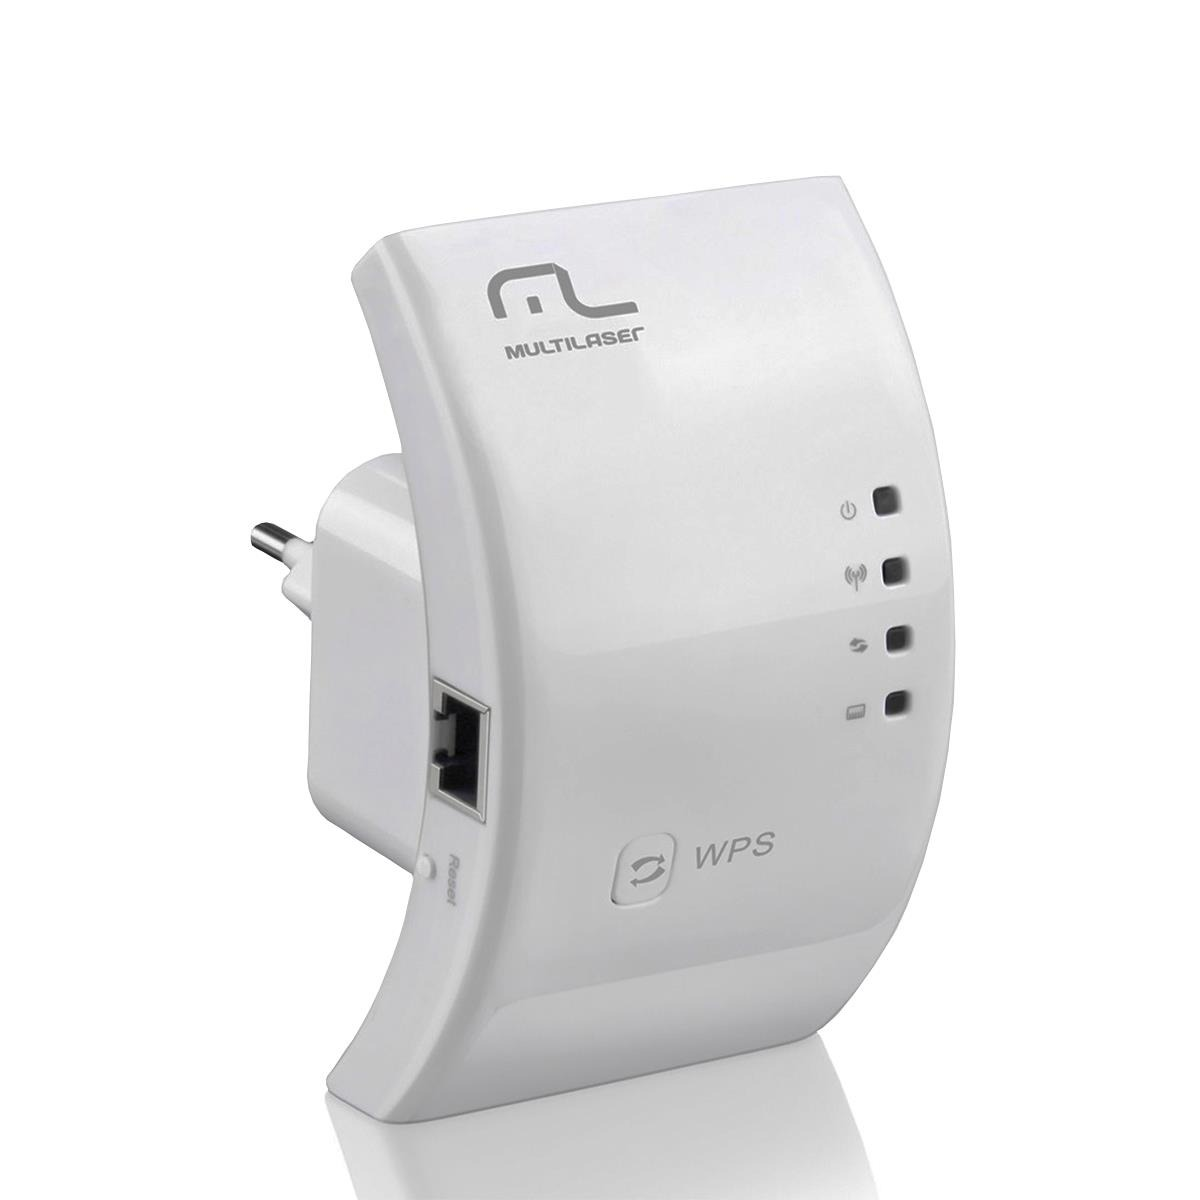 Repetidor Wireless 300 mbps 2.4Ghz  Bivolt - Amplificador Wifi